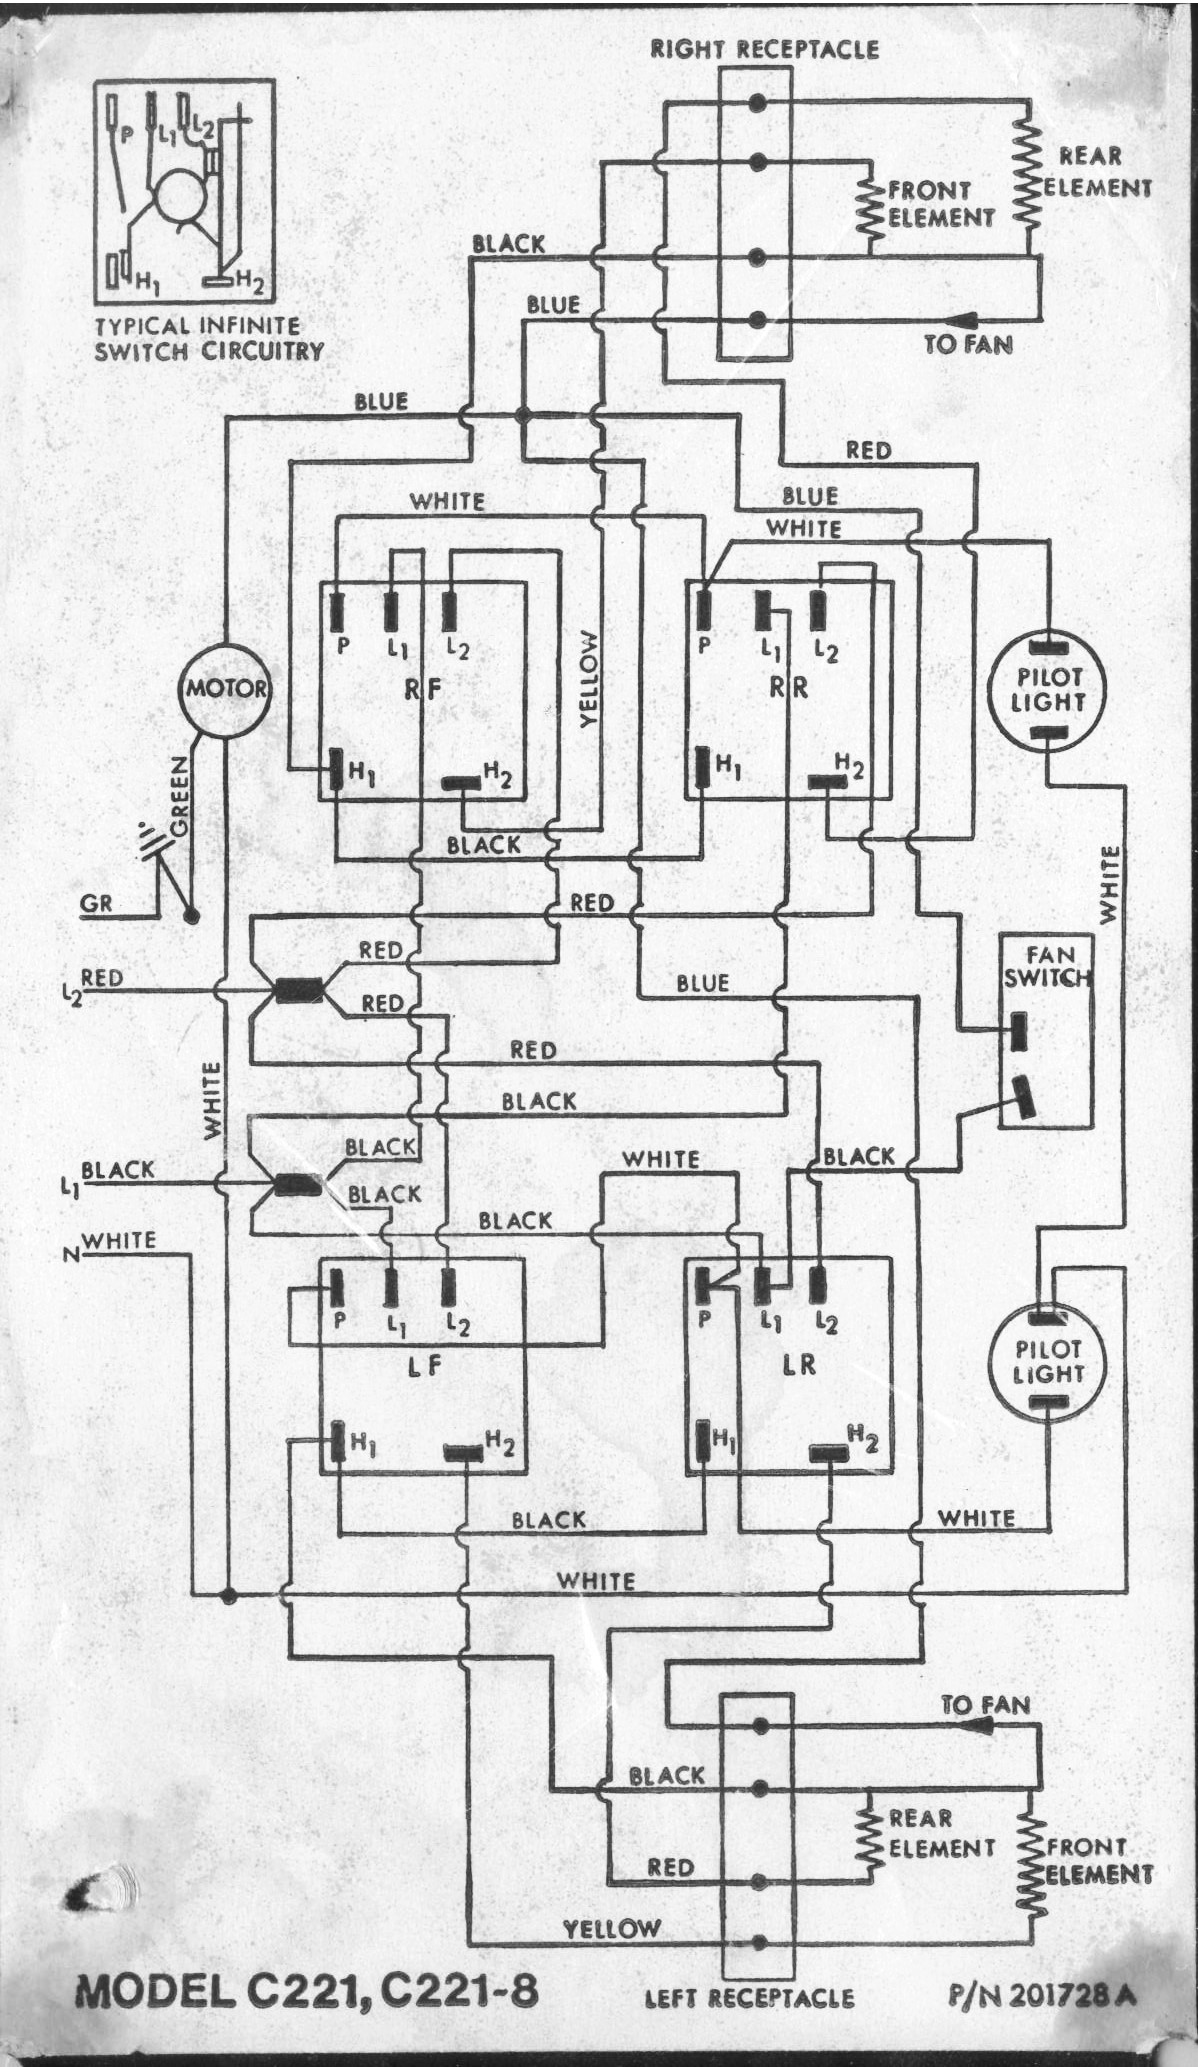 hight resolution of edit here is the wiring diagram c221 wiring diagram